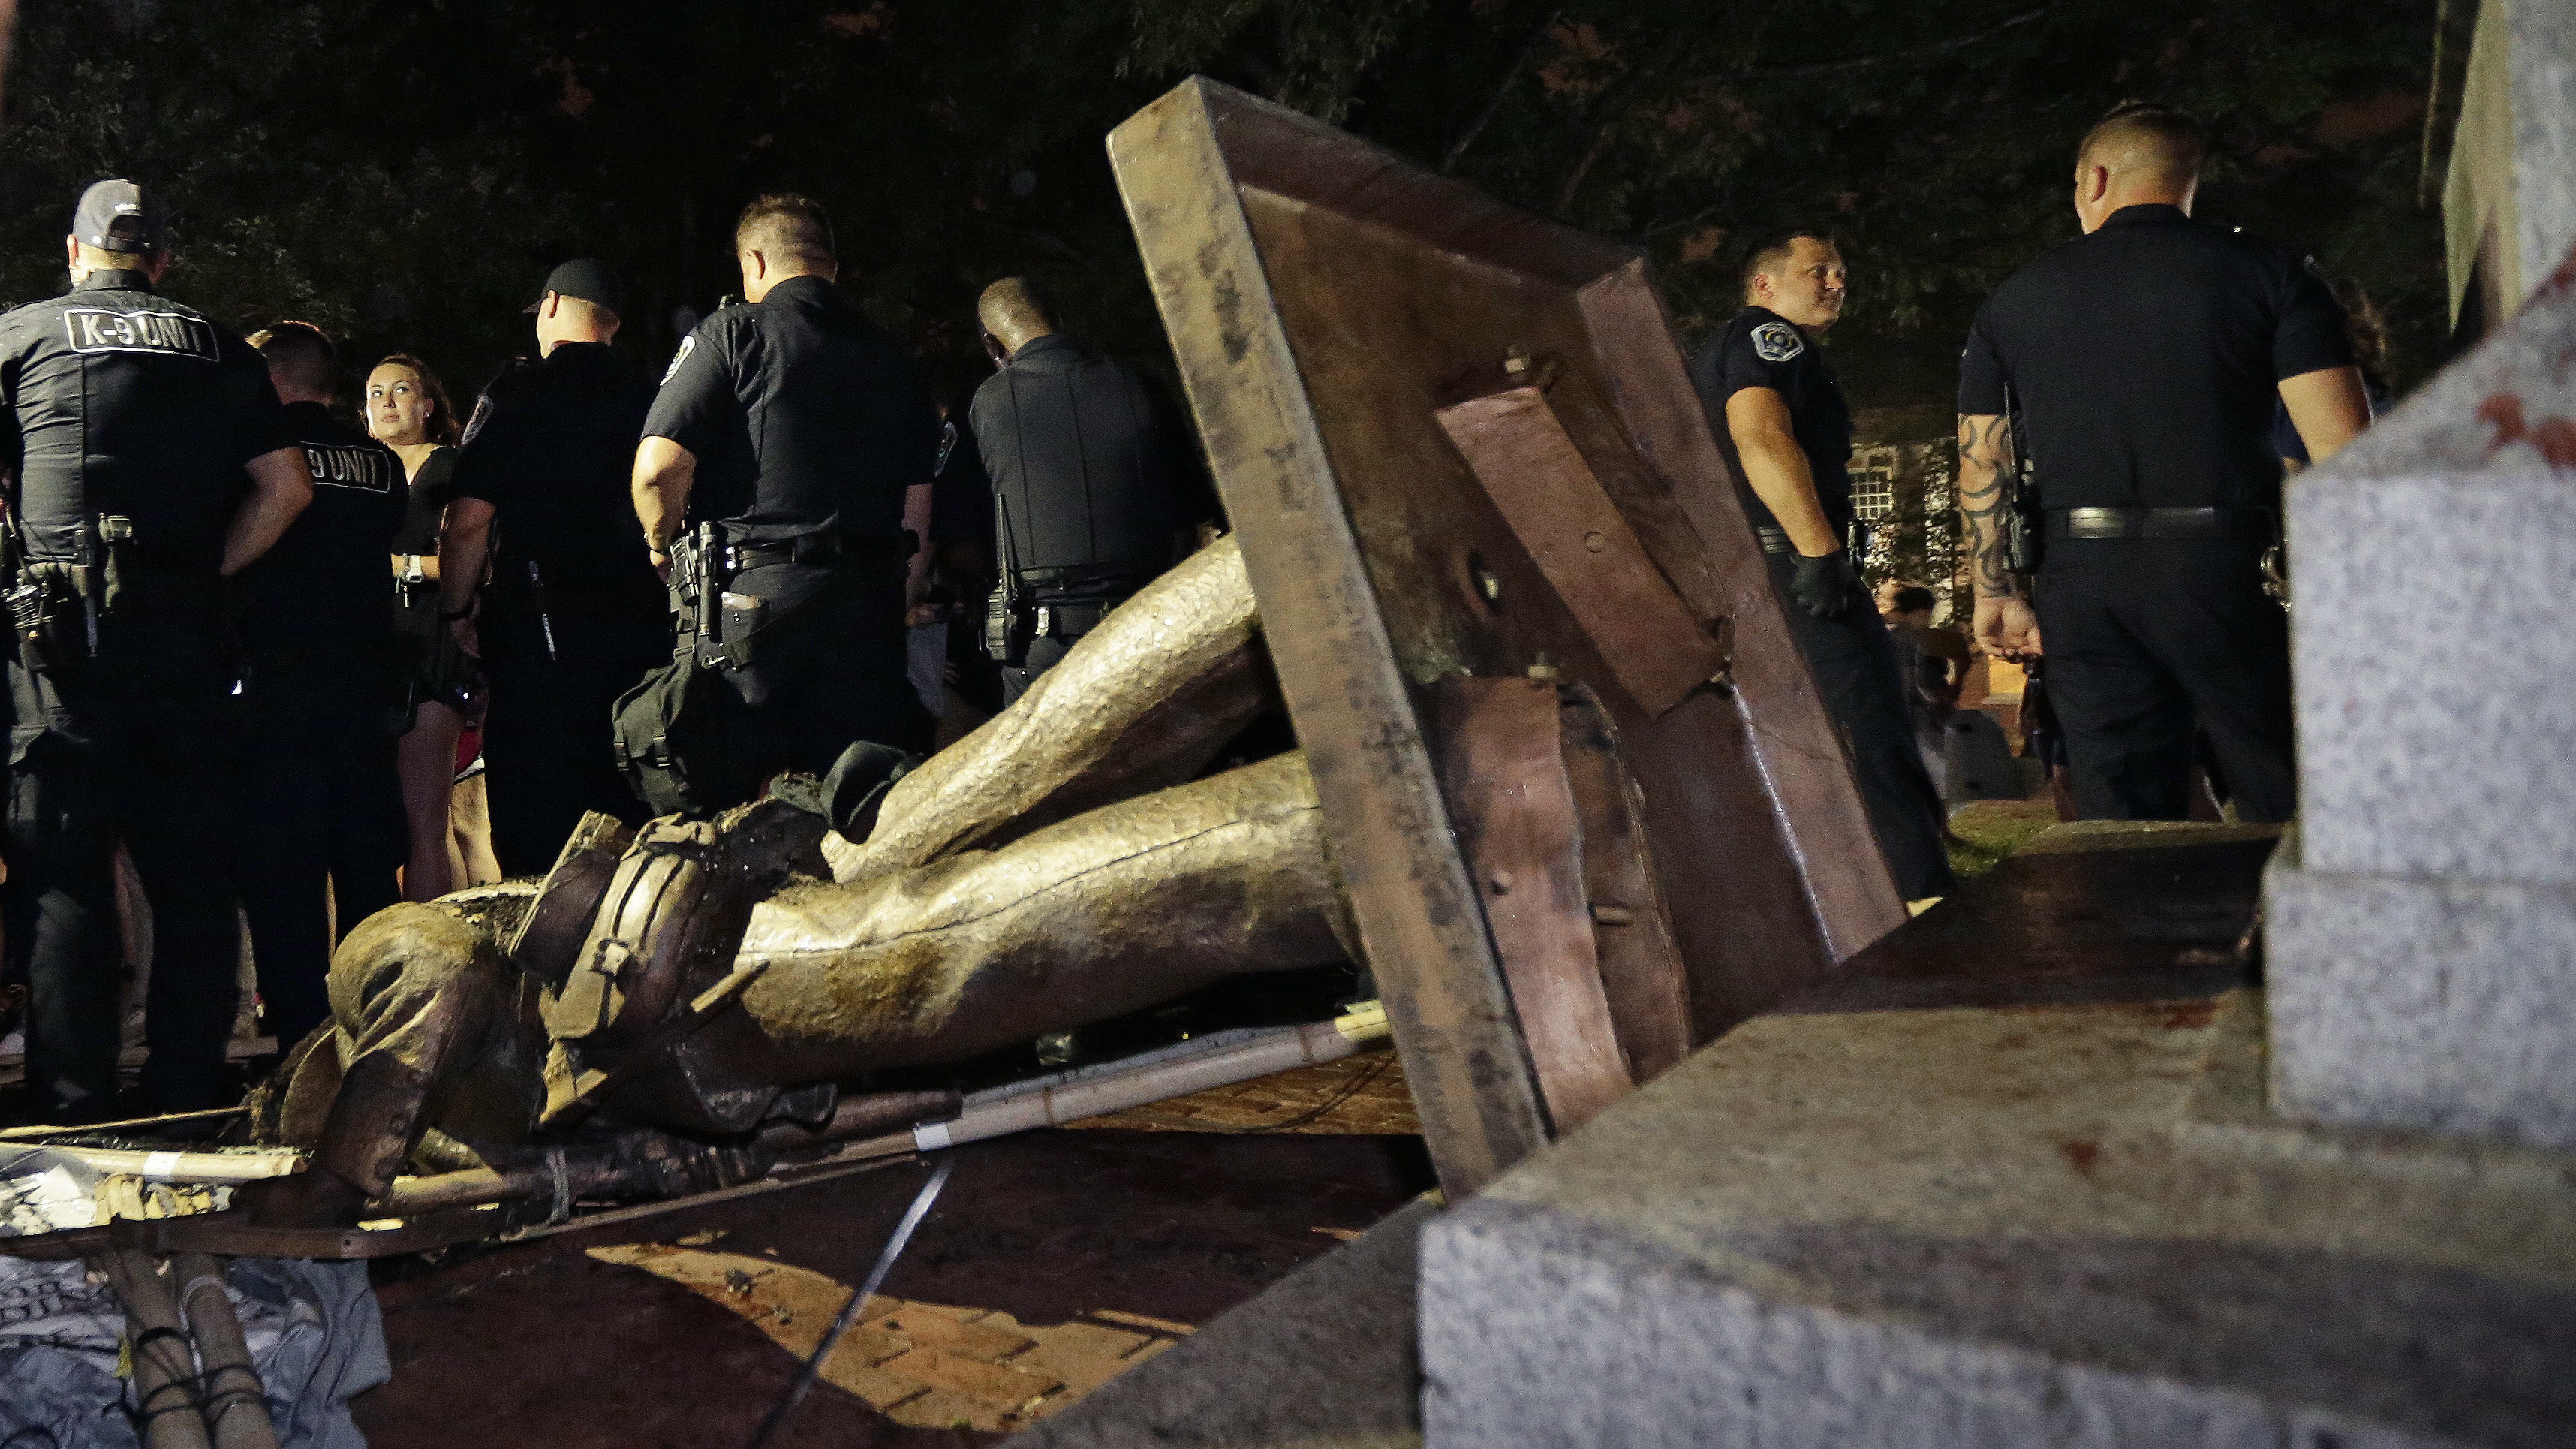 On Her Way Out, UNC Chancellor Orders Removal Of 'Silent Sam' Pedestal